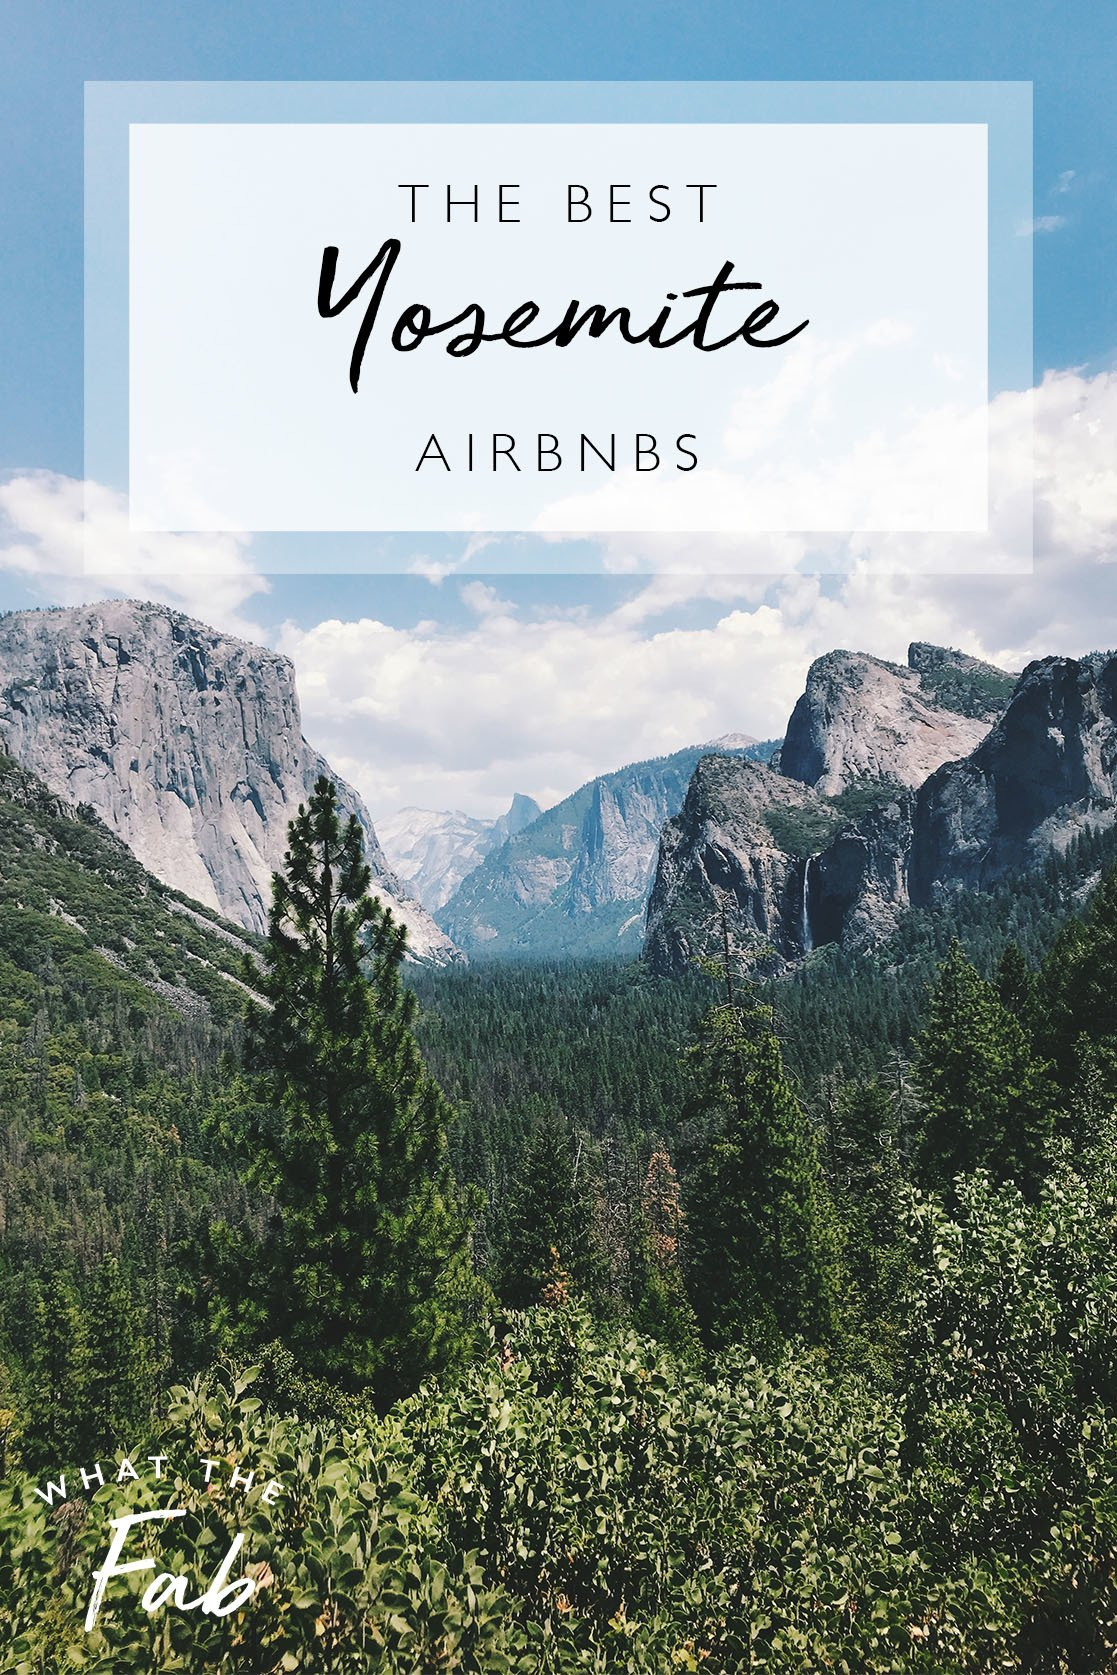 Yosemite Airbnbs, by Travel Blogger What The Fab